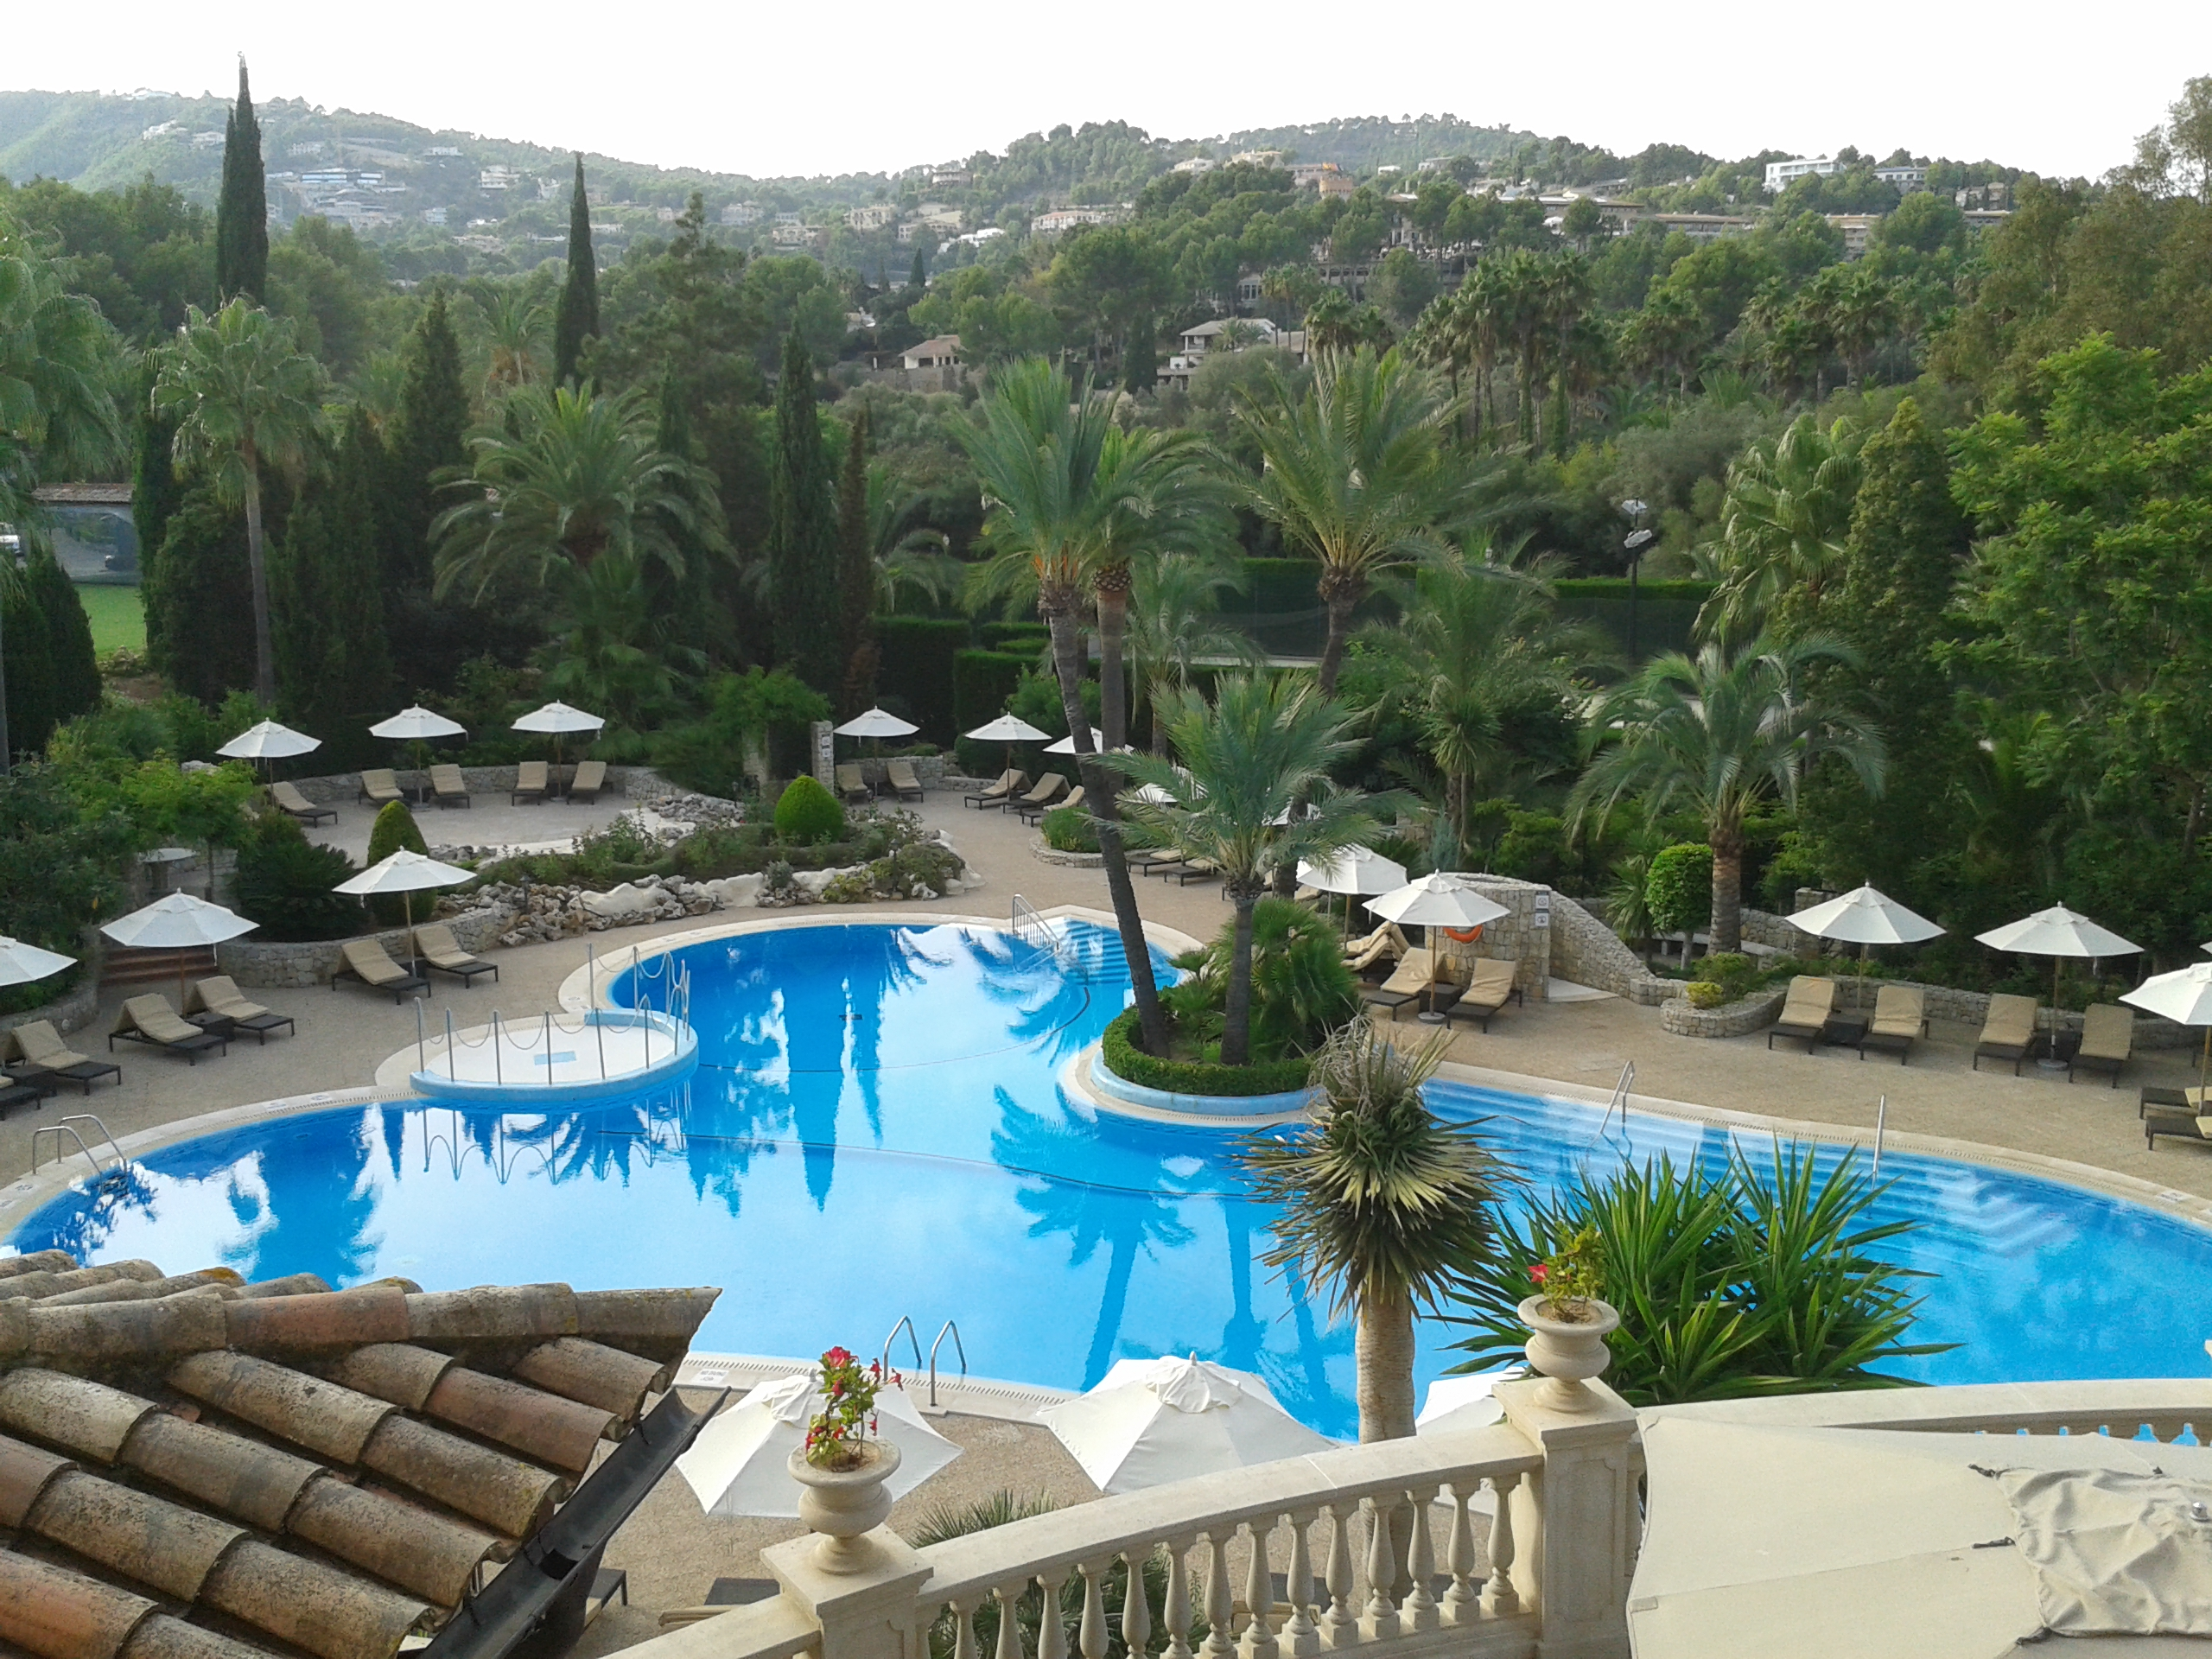 The view from my window at the Sheraton Golf Arabella resort, just 10 minutes drive from Palma